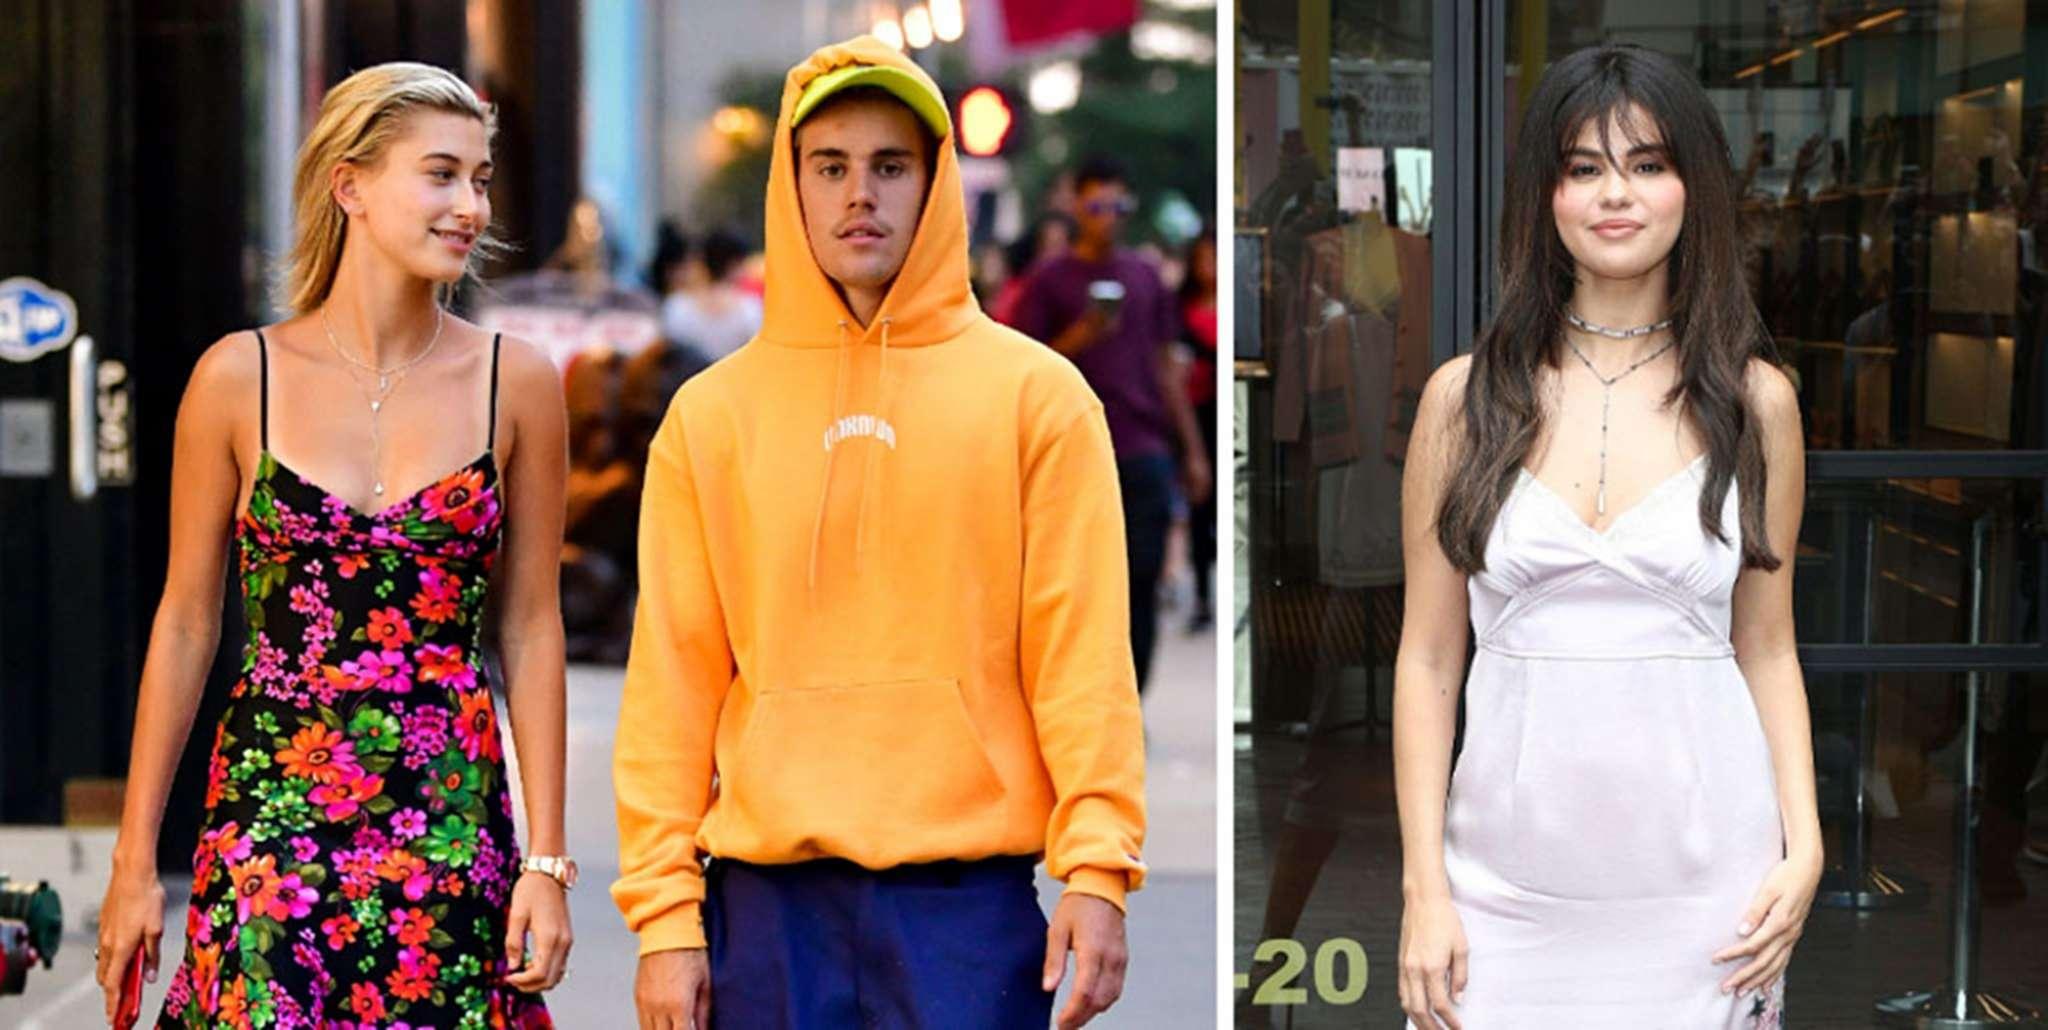 justin-bieber-said-a-few-things-about-hailey-bieber-and-selena-gomez-here-is-why-the-texan-is-probably-smiling